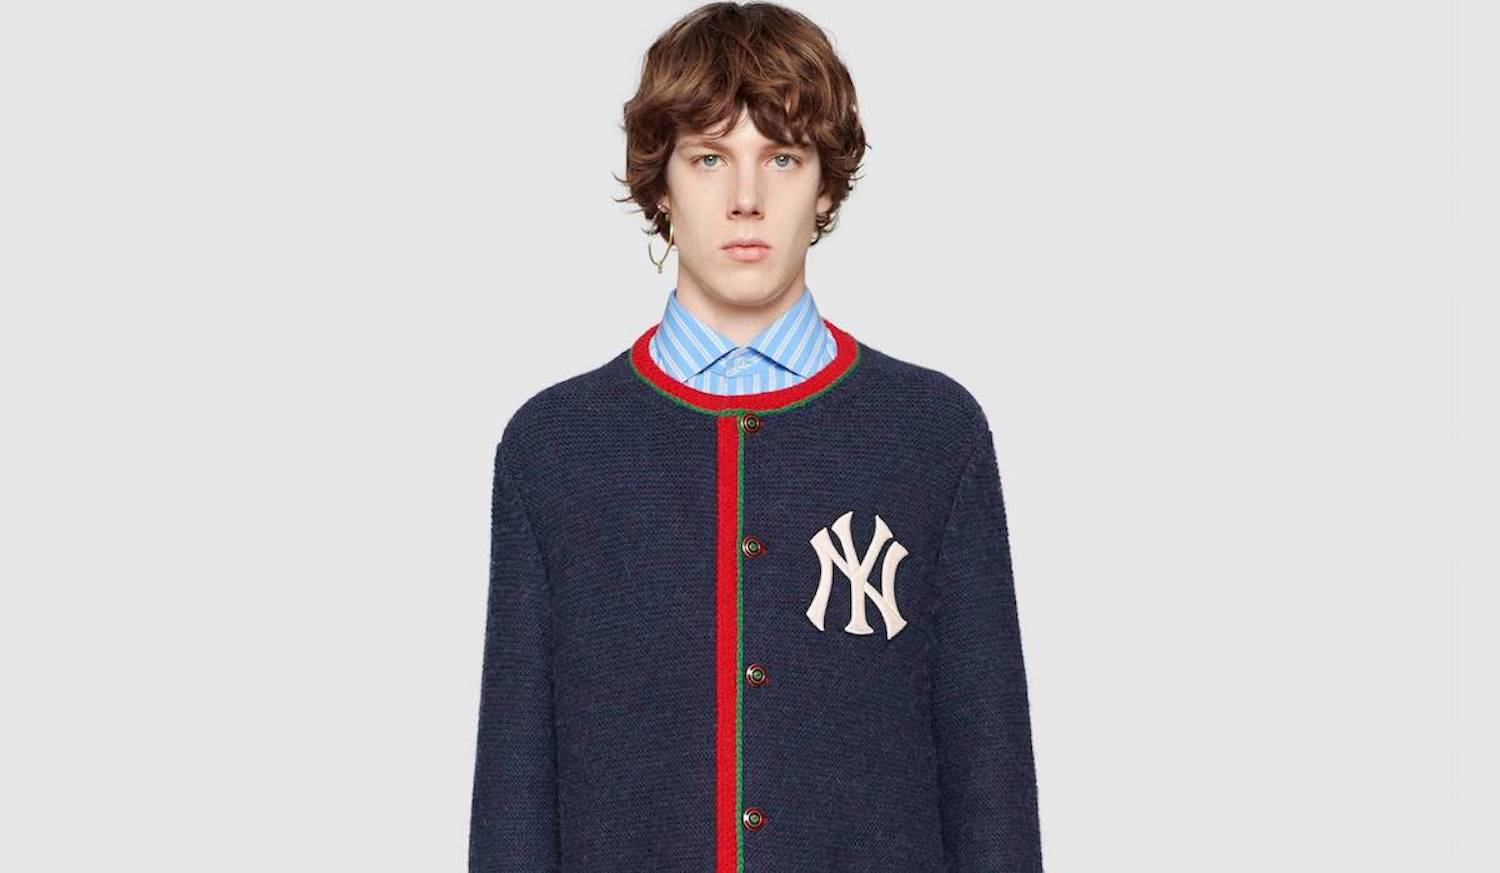 New in Gucci: NY Yankee Knitwear